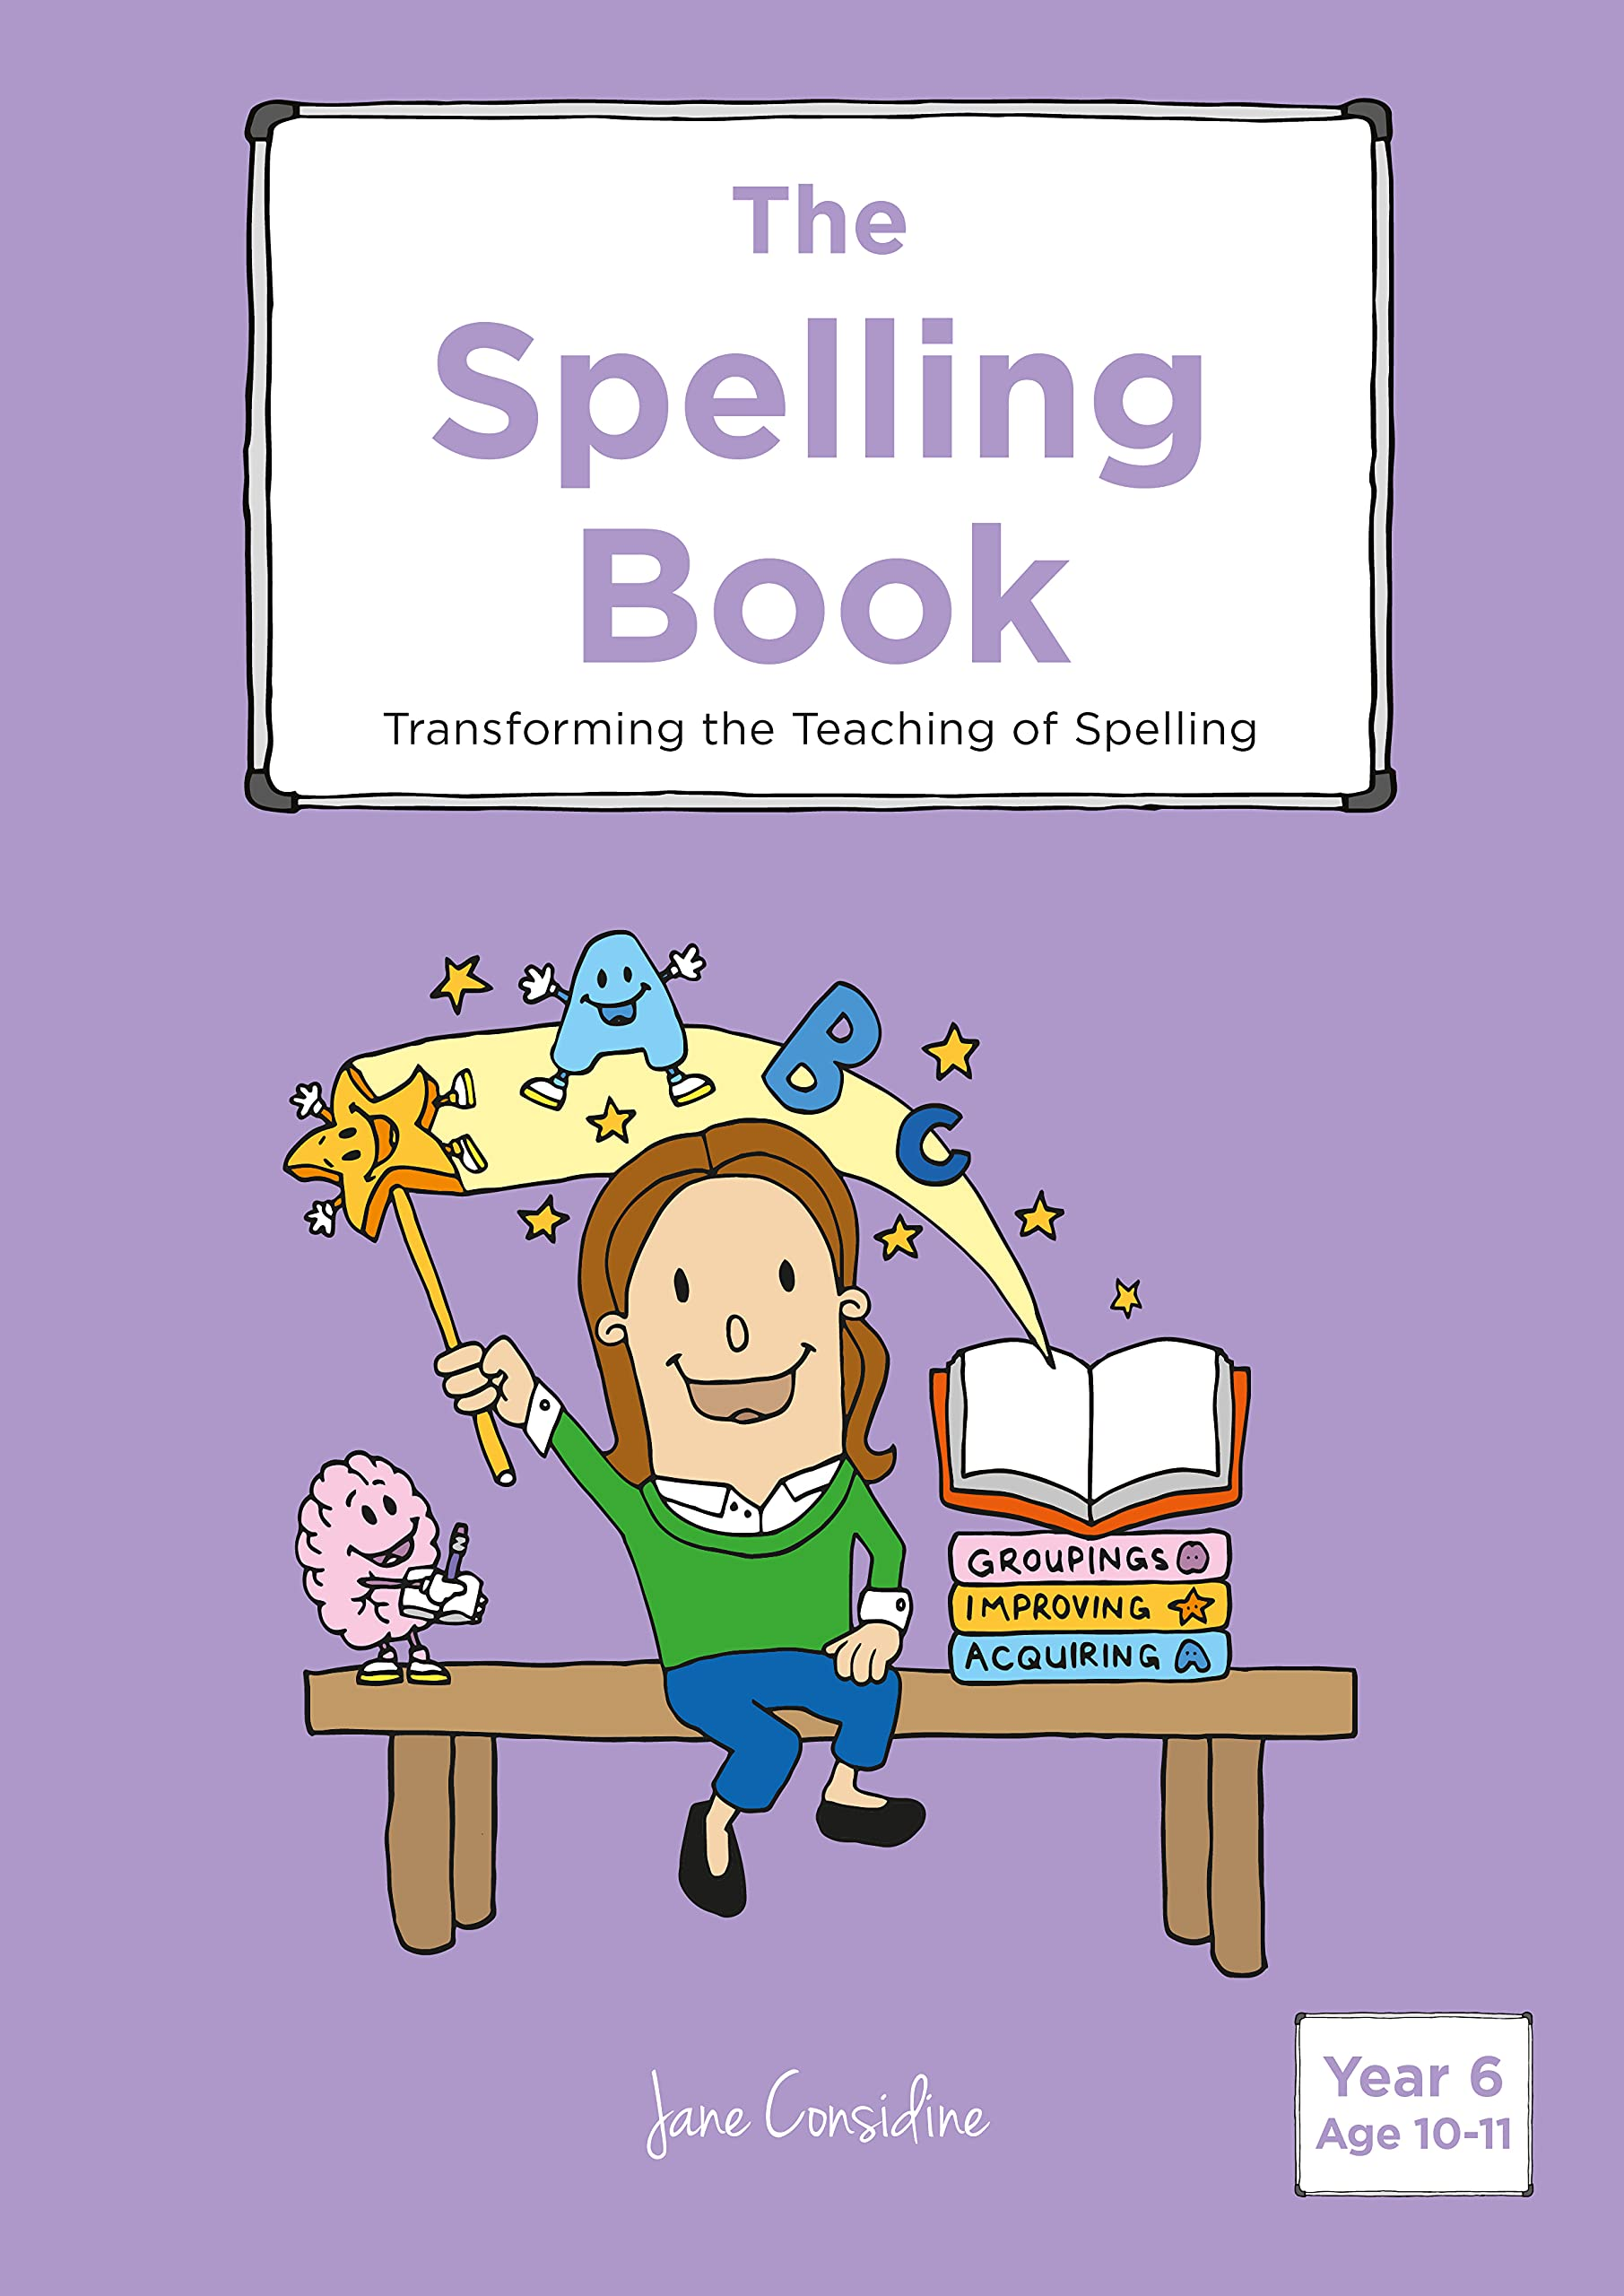 The Spelling Book: Transforming the Teaching of Spelling (Year 6)